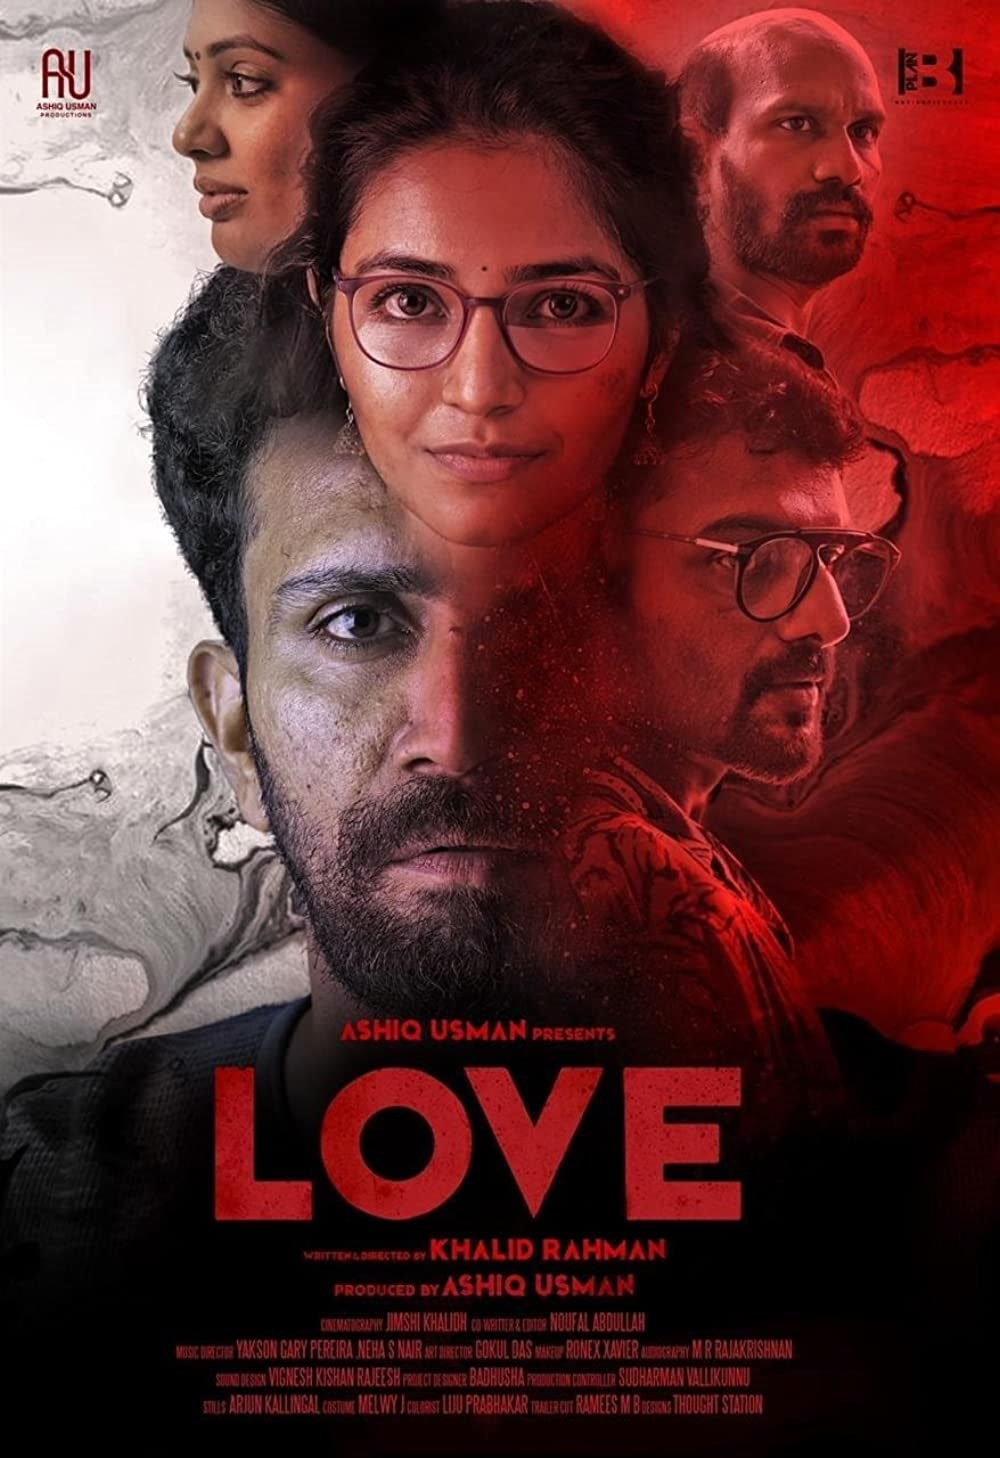 Love (2021)Malayalam Movie Bangla Subtitle-bsub tune